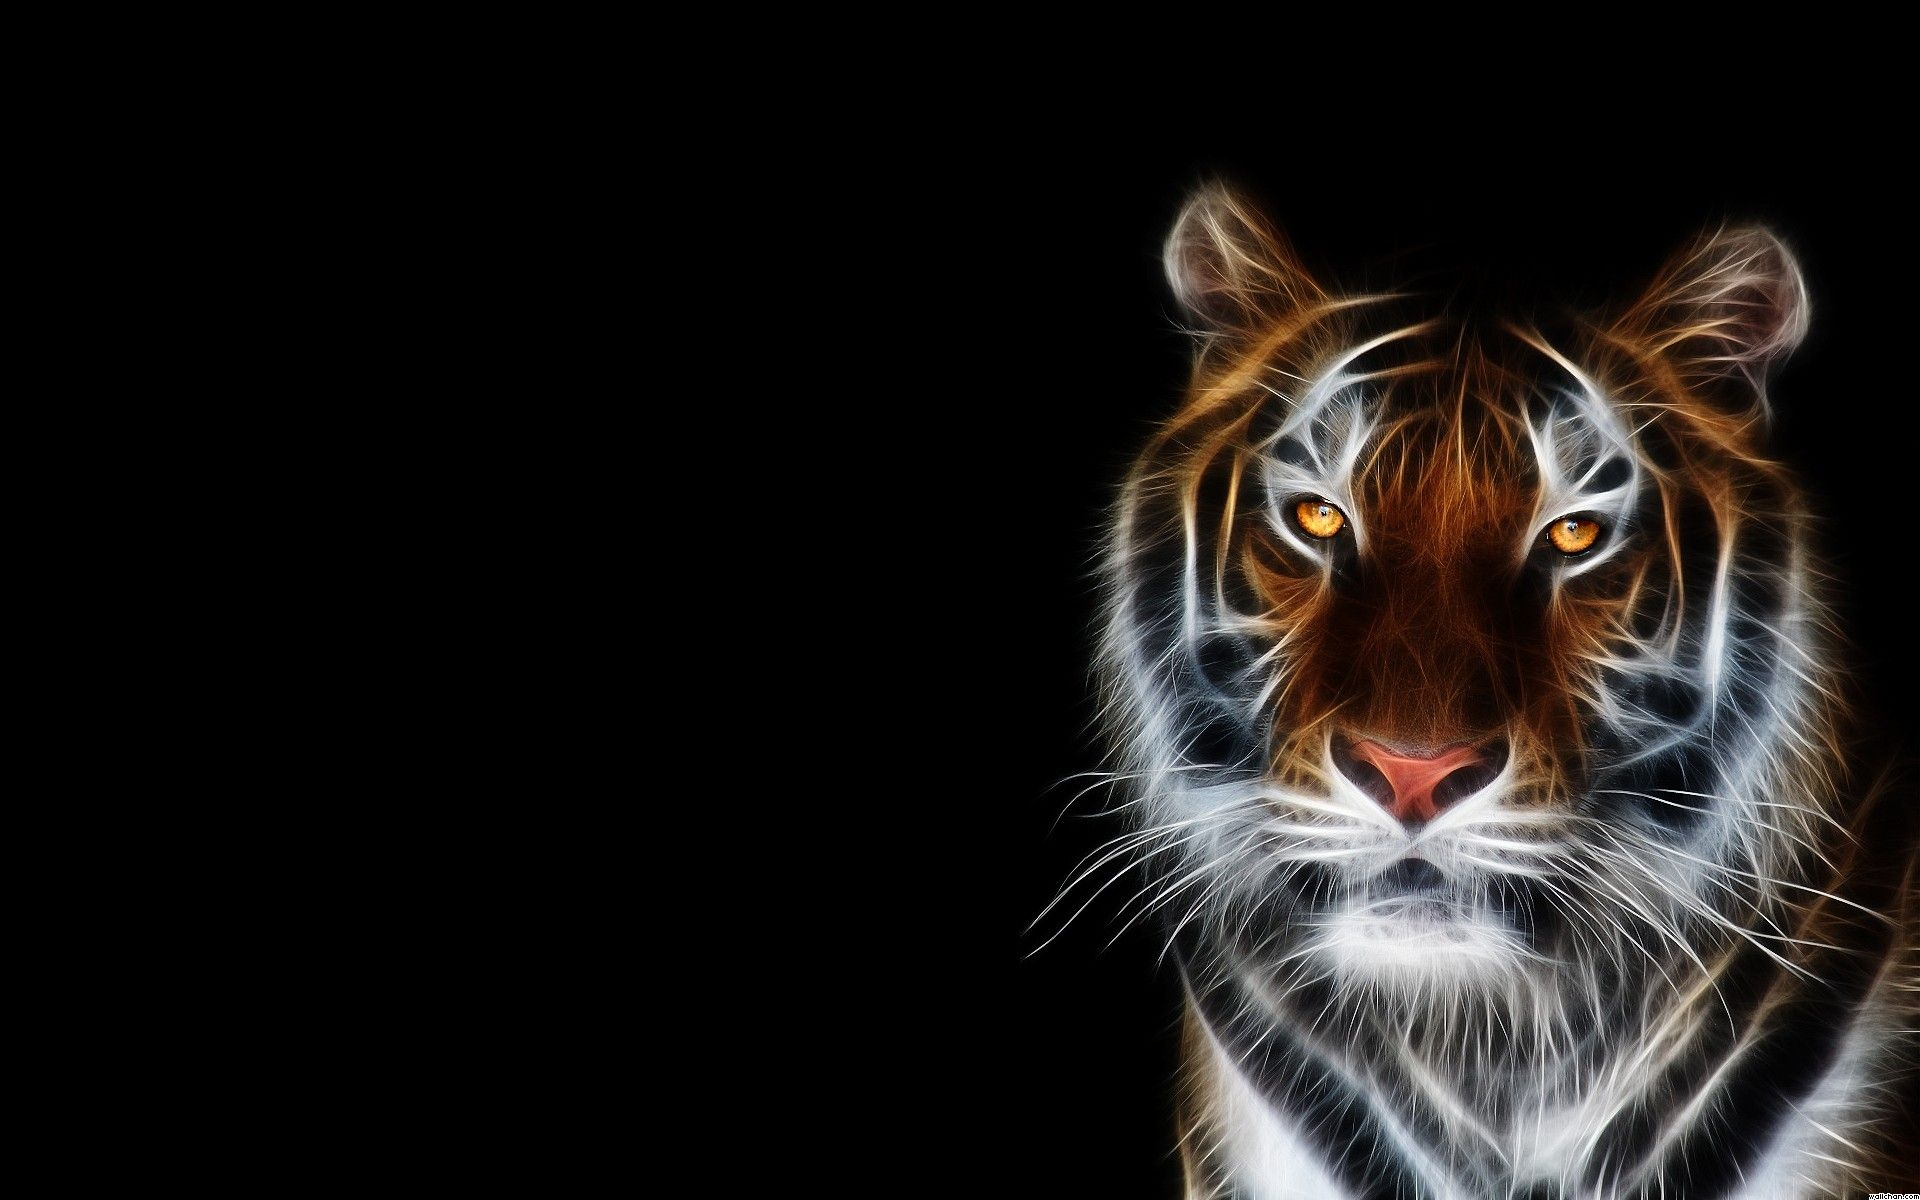 Animal Wallpapers and Backgrounds - Page 4 - Desktop